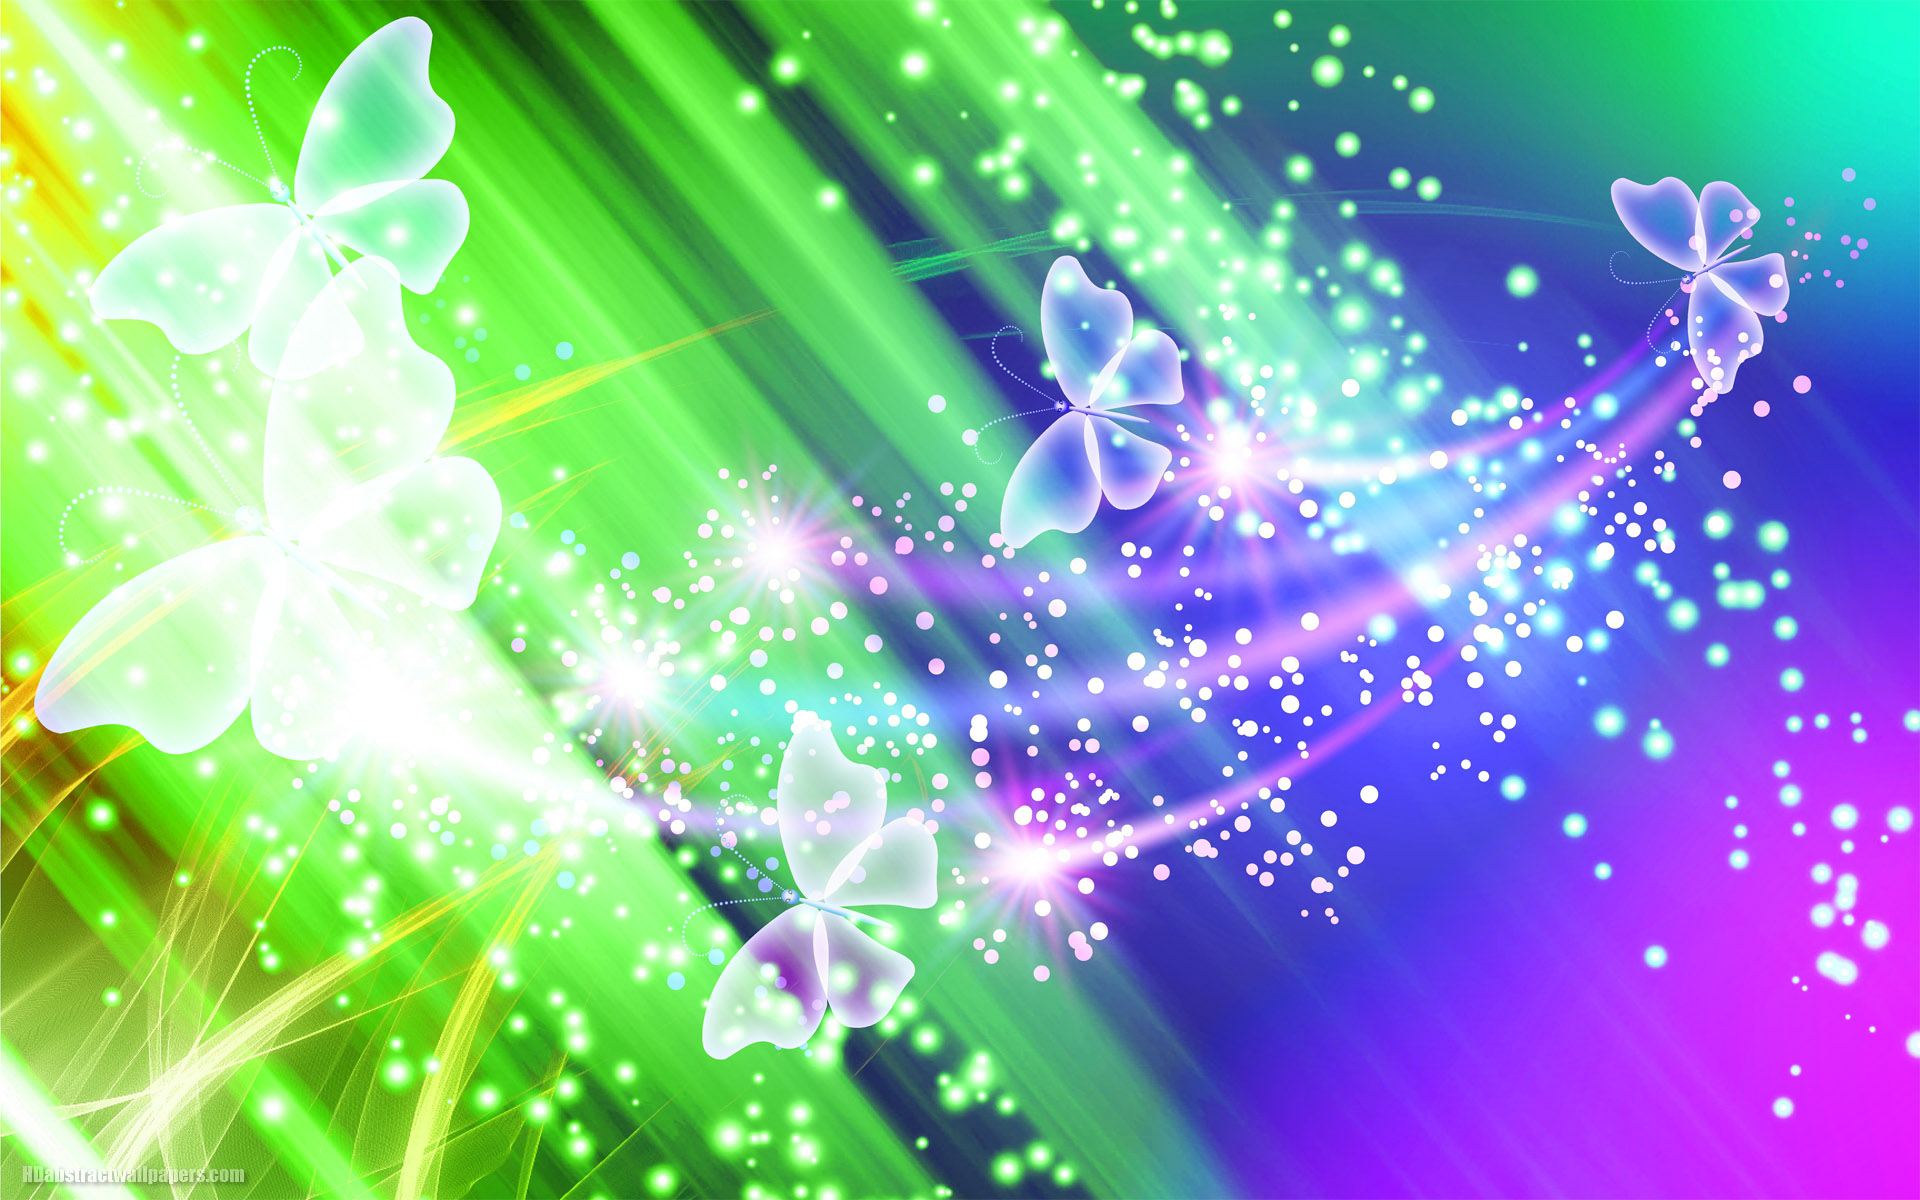 Colorful Abstract Wallpaper With Butterflies And Lights